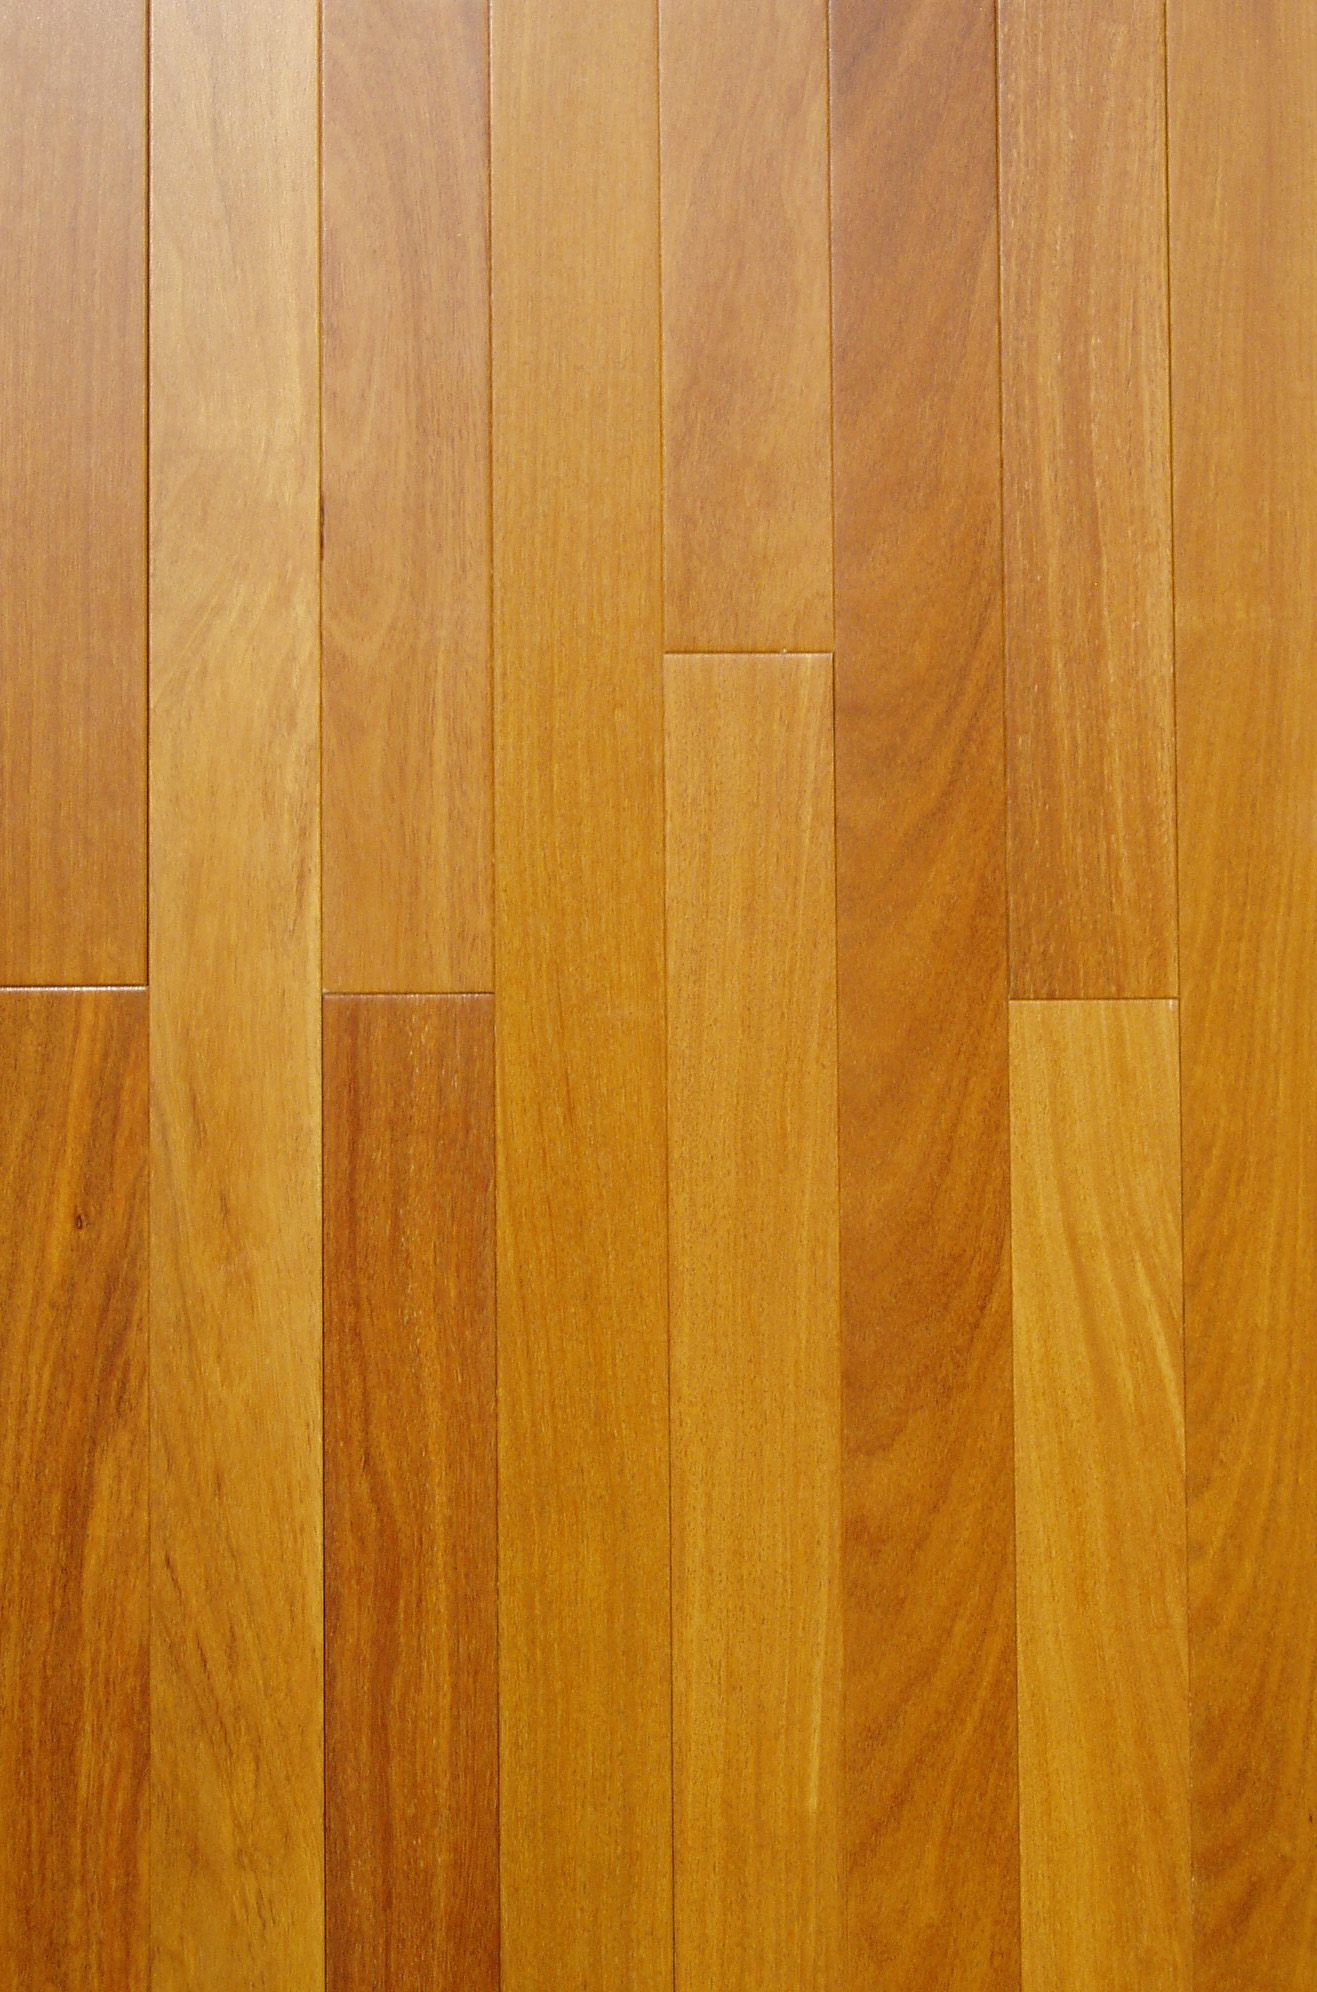 Hardwood Floor Samples atmosphere for producing hardwoods of unrivaled excellence and beauty aacer flooring brings you a full line or northern hardwood flooring products in a Ingenious Wood Flooring Decorating Ideas For Wood Floor